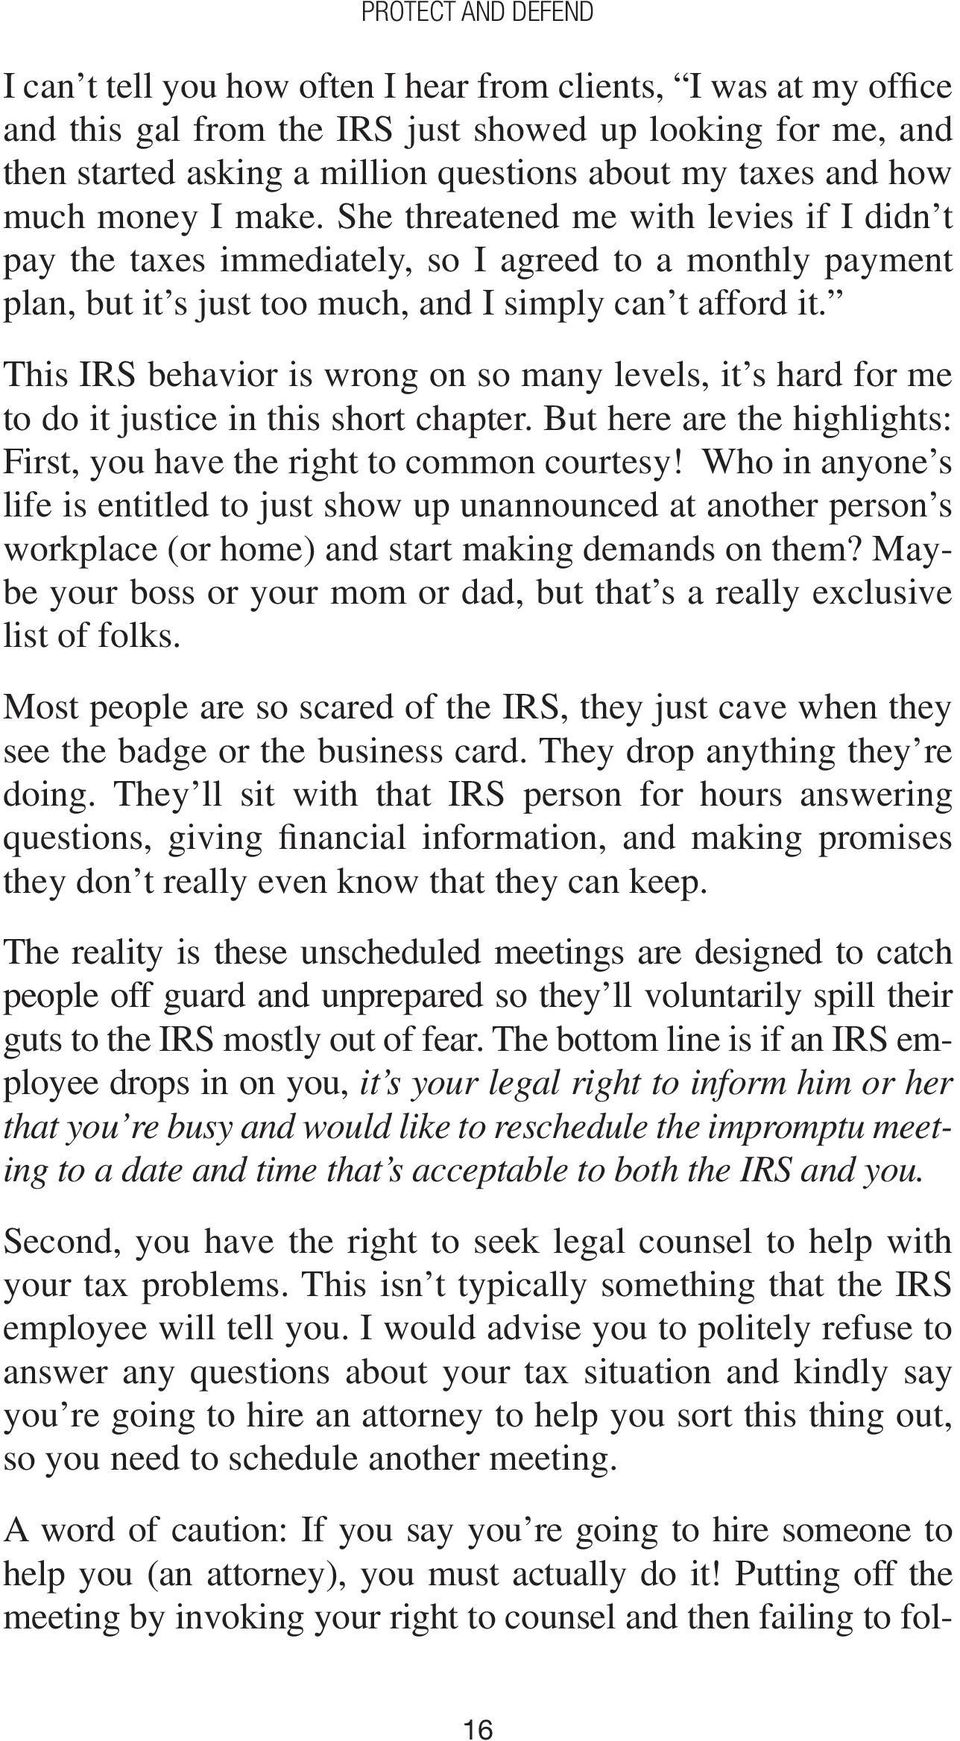 This IRS behavior is wrong on so many levels, it s hard for me to do it justice in this short chapter. But here are the highlights: First, you have the right to common courtesy!